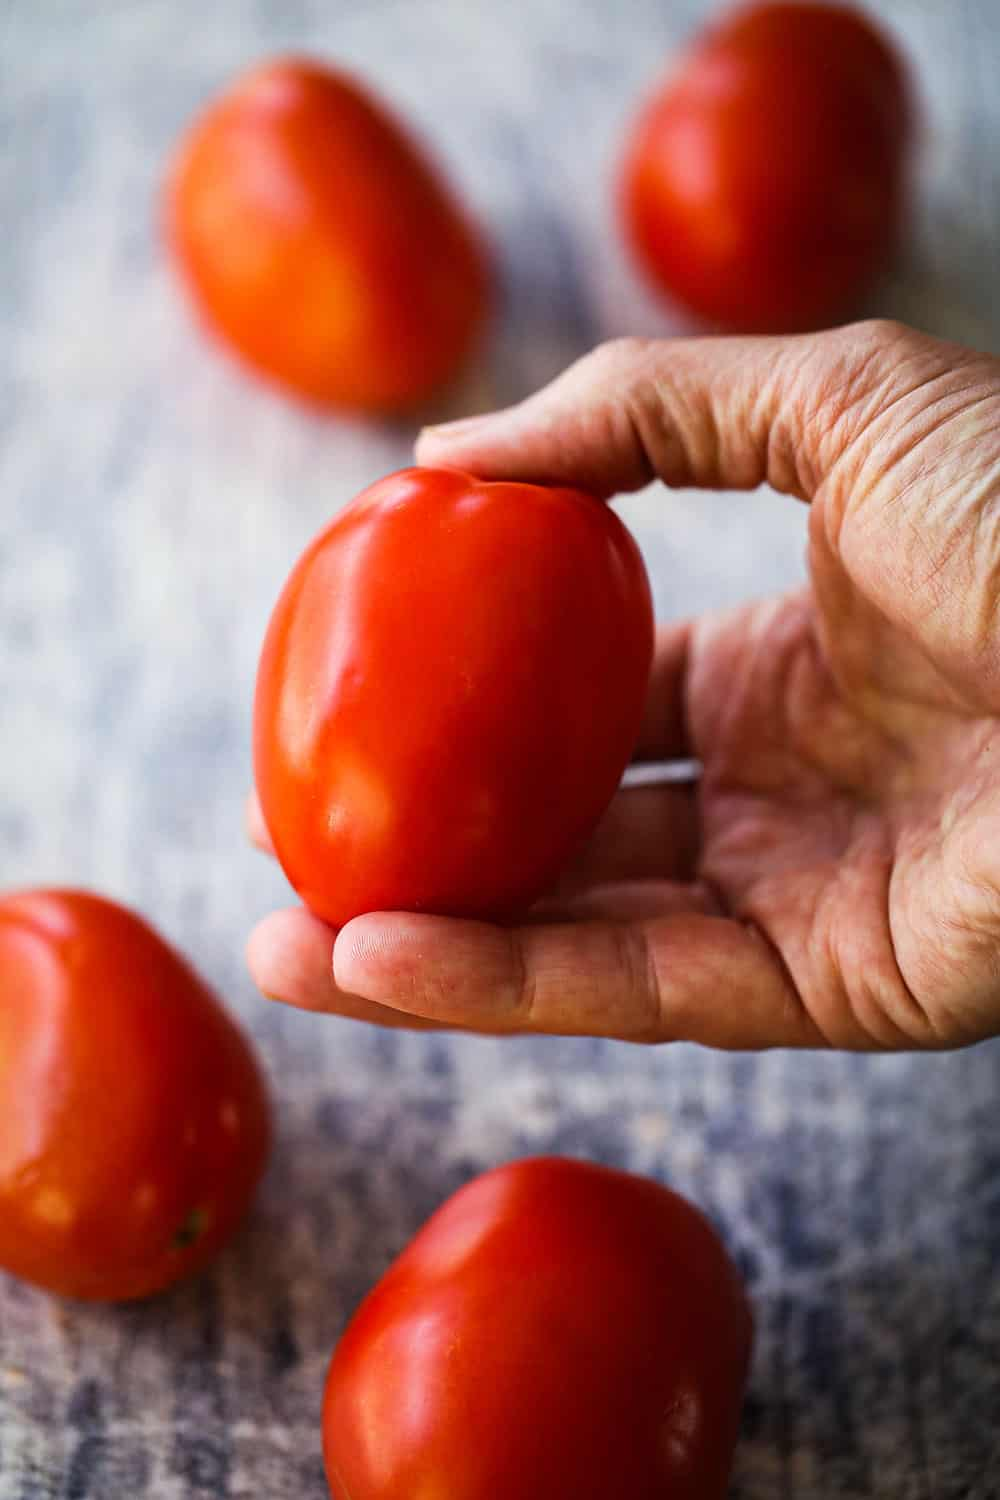 A hand holding a ripe roma tomato above a scattering of other roma tomatoes.